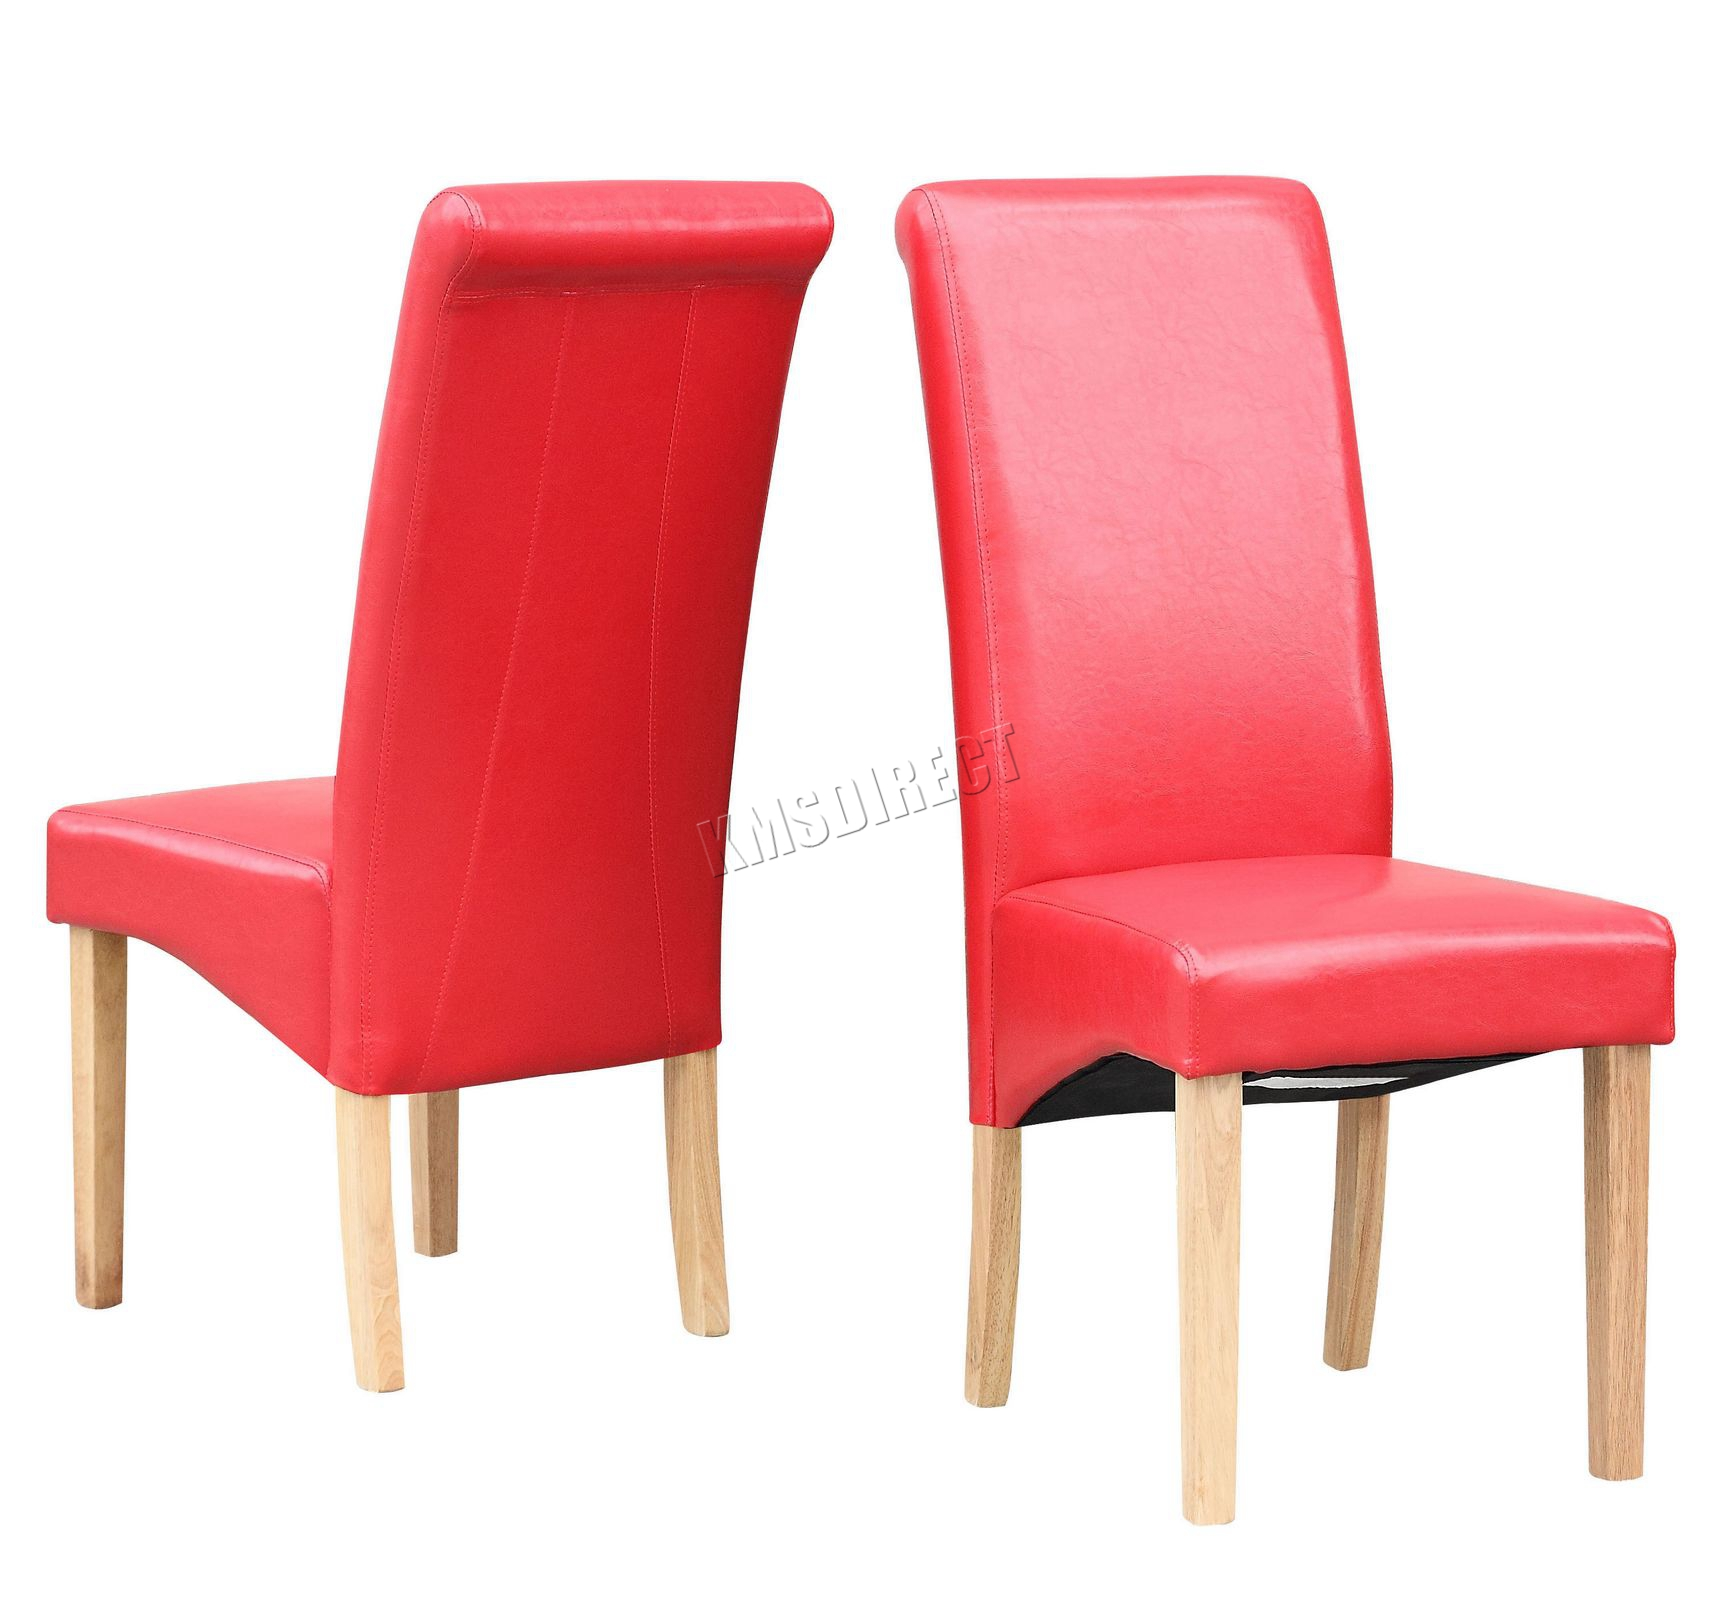 High Backed Kitchen Chairs: Faux Leather Dining Chairs Roll Top Scroll High Back Wood